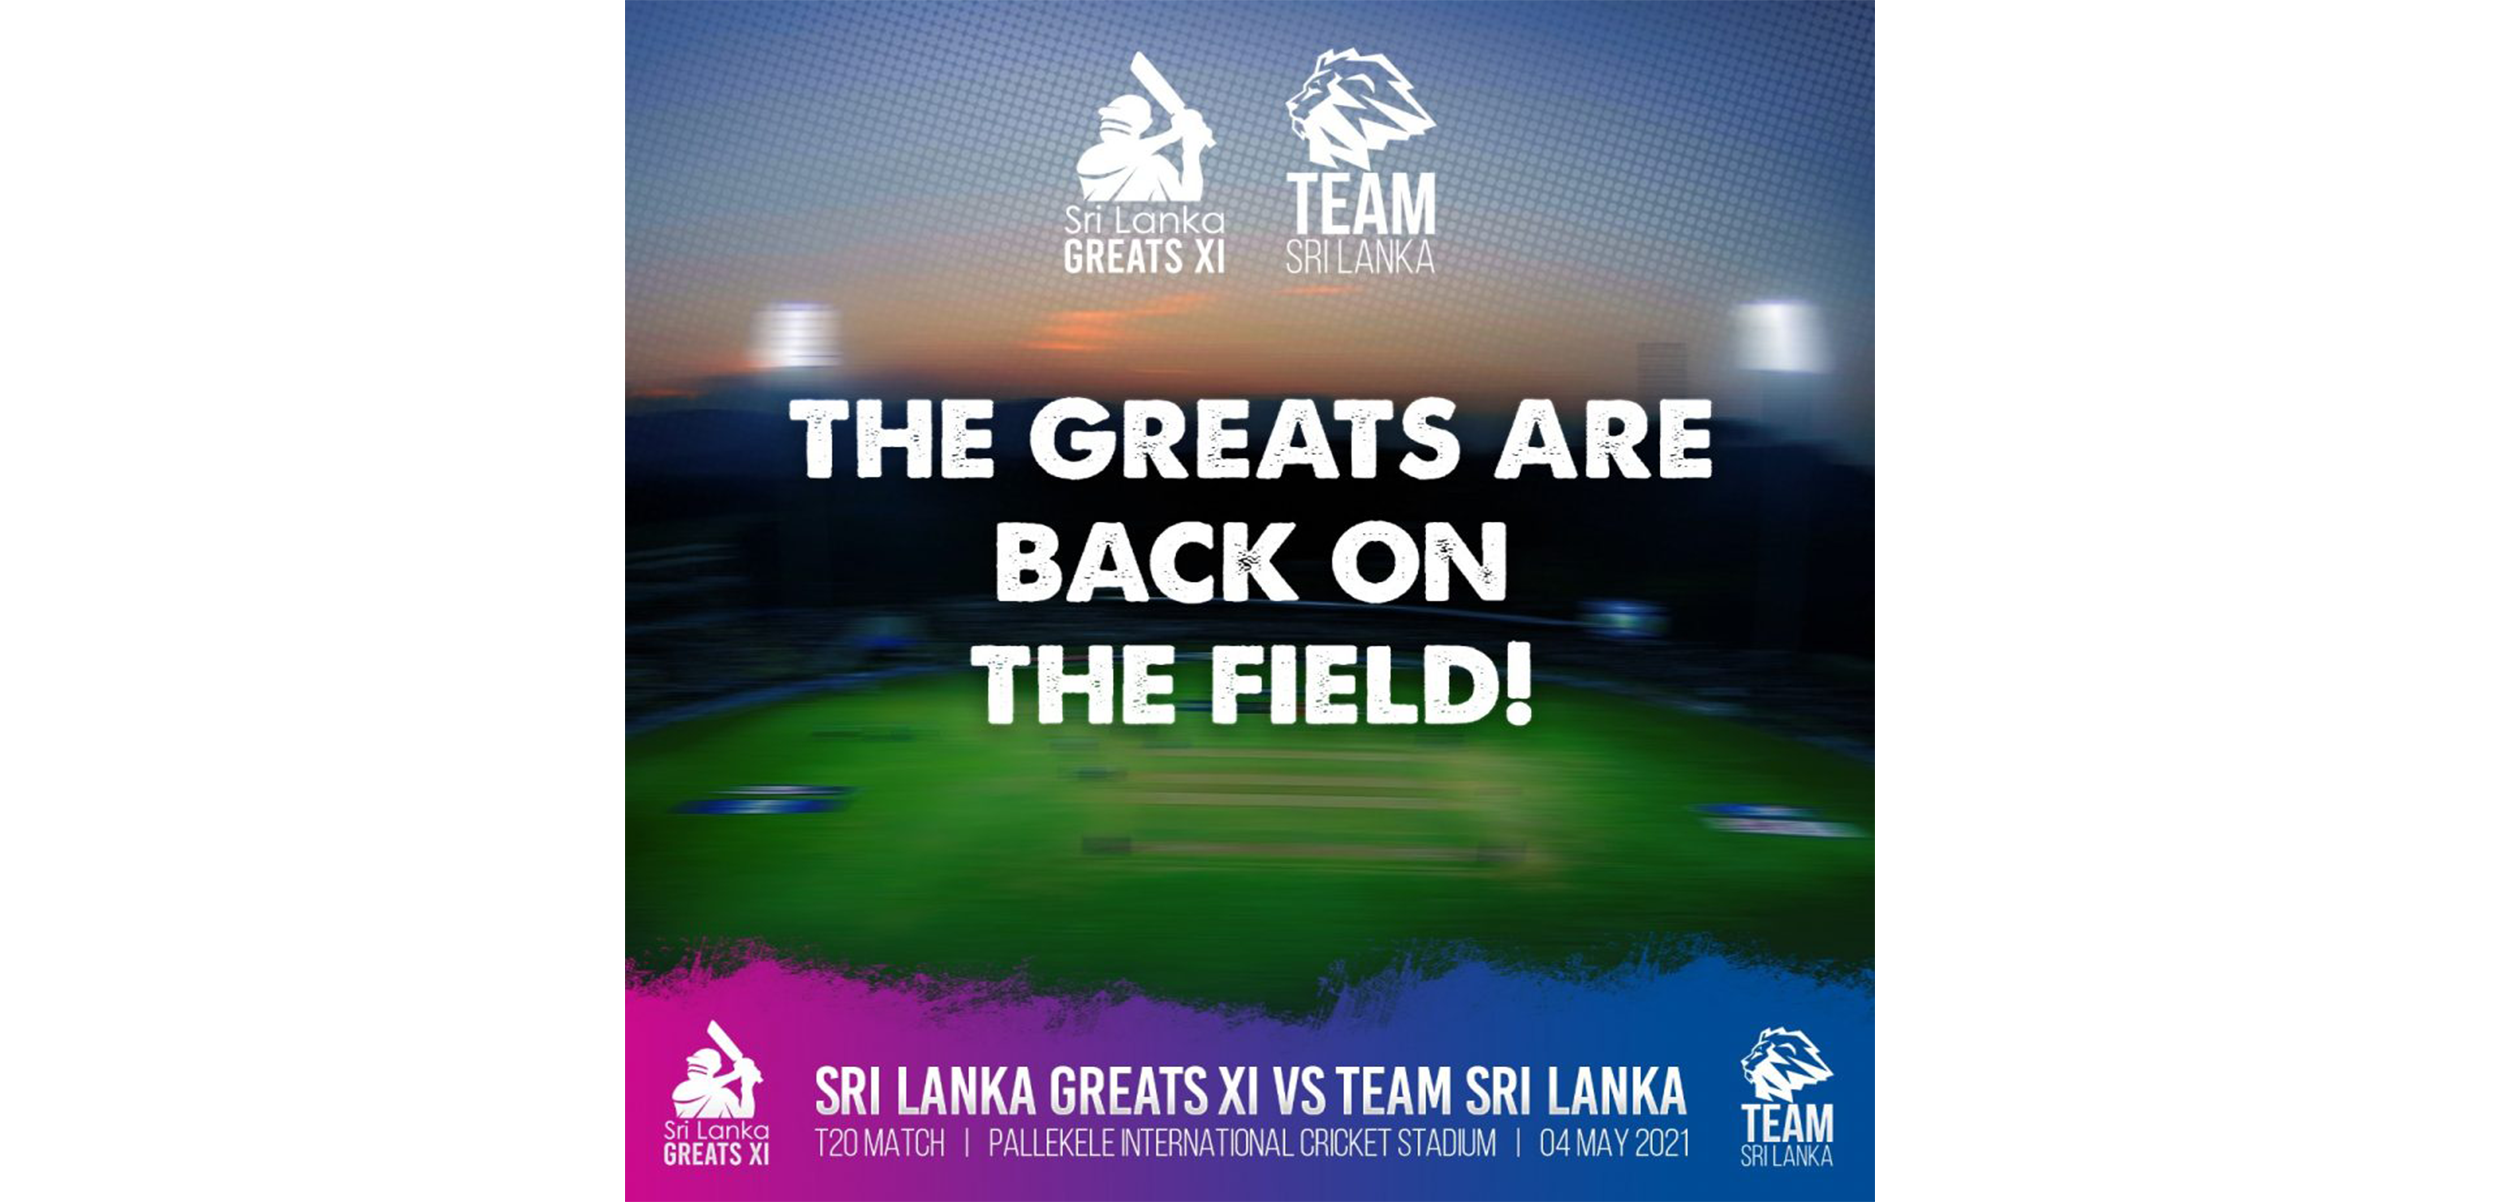 Sri Lanka Cricket organizes a charity game to raise funds to fight Covid-19